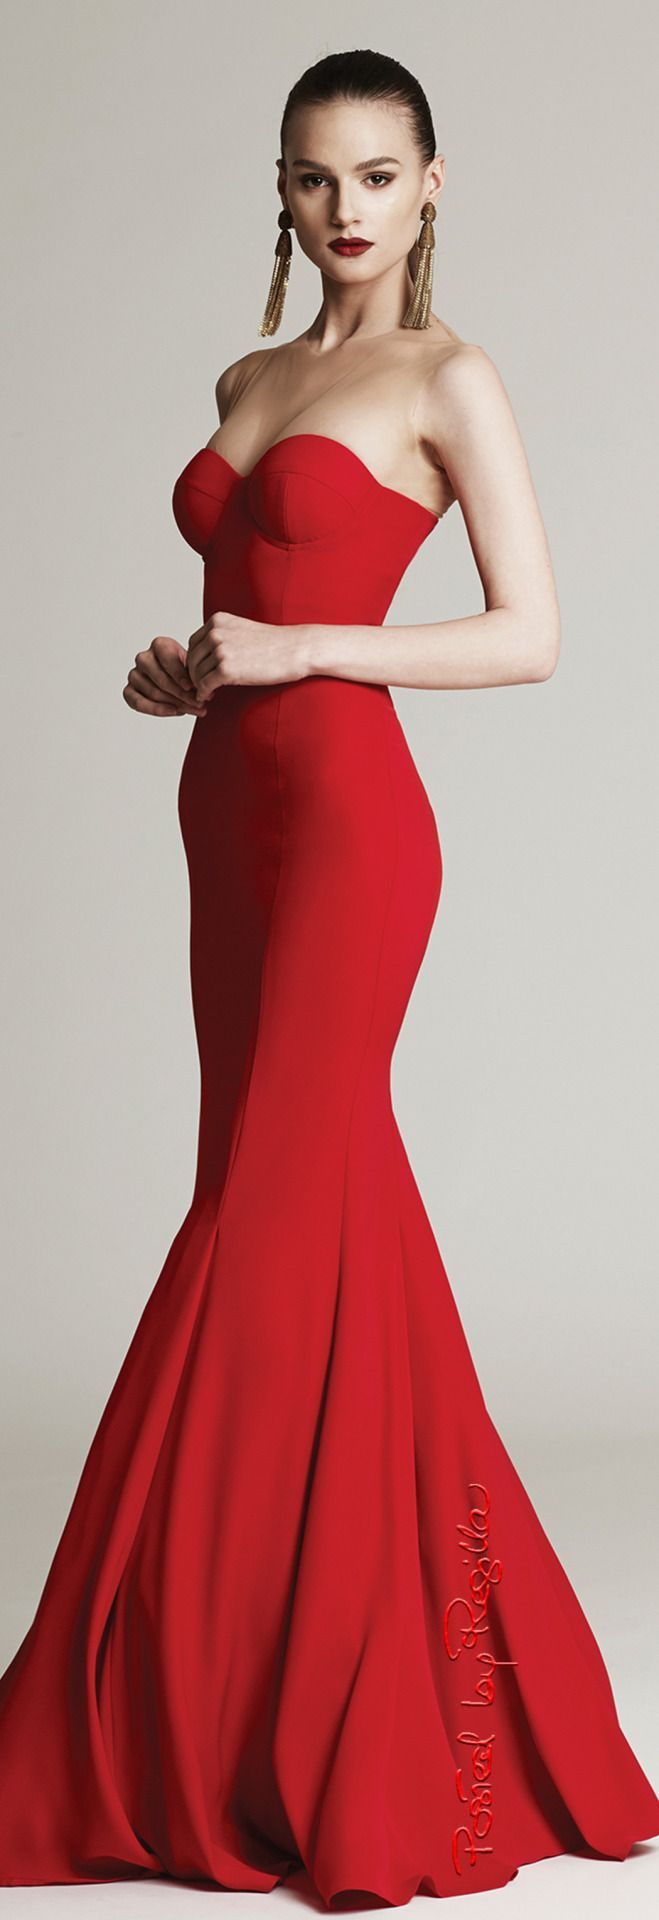 Beautiful #women wearing Red #Dresses | Women in Red | Pinterest ...